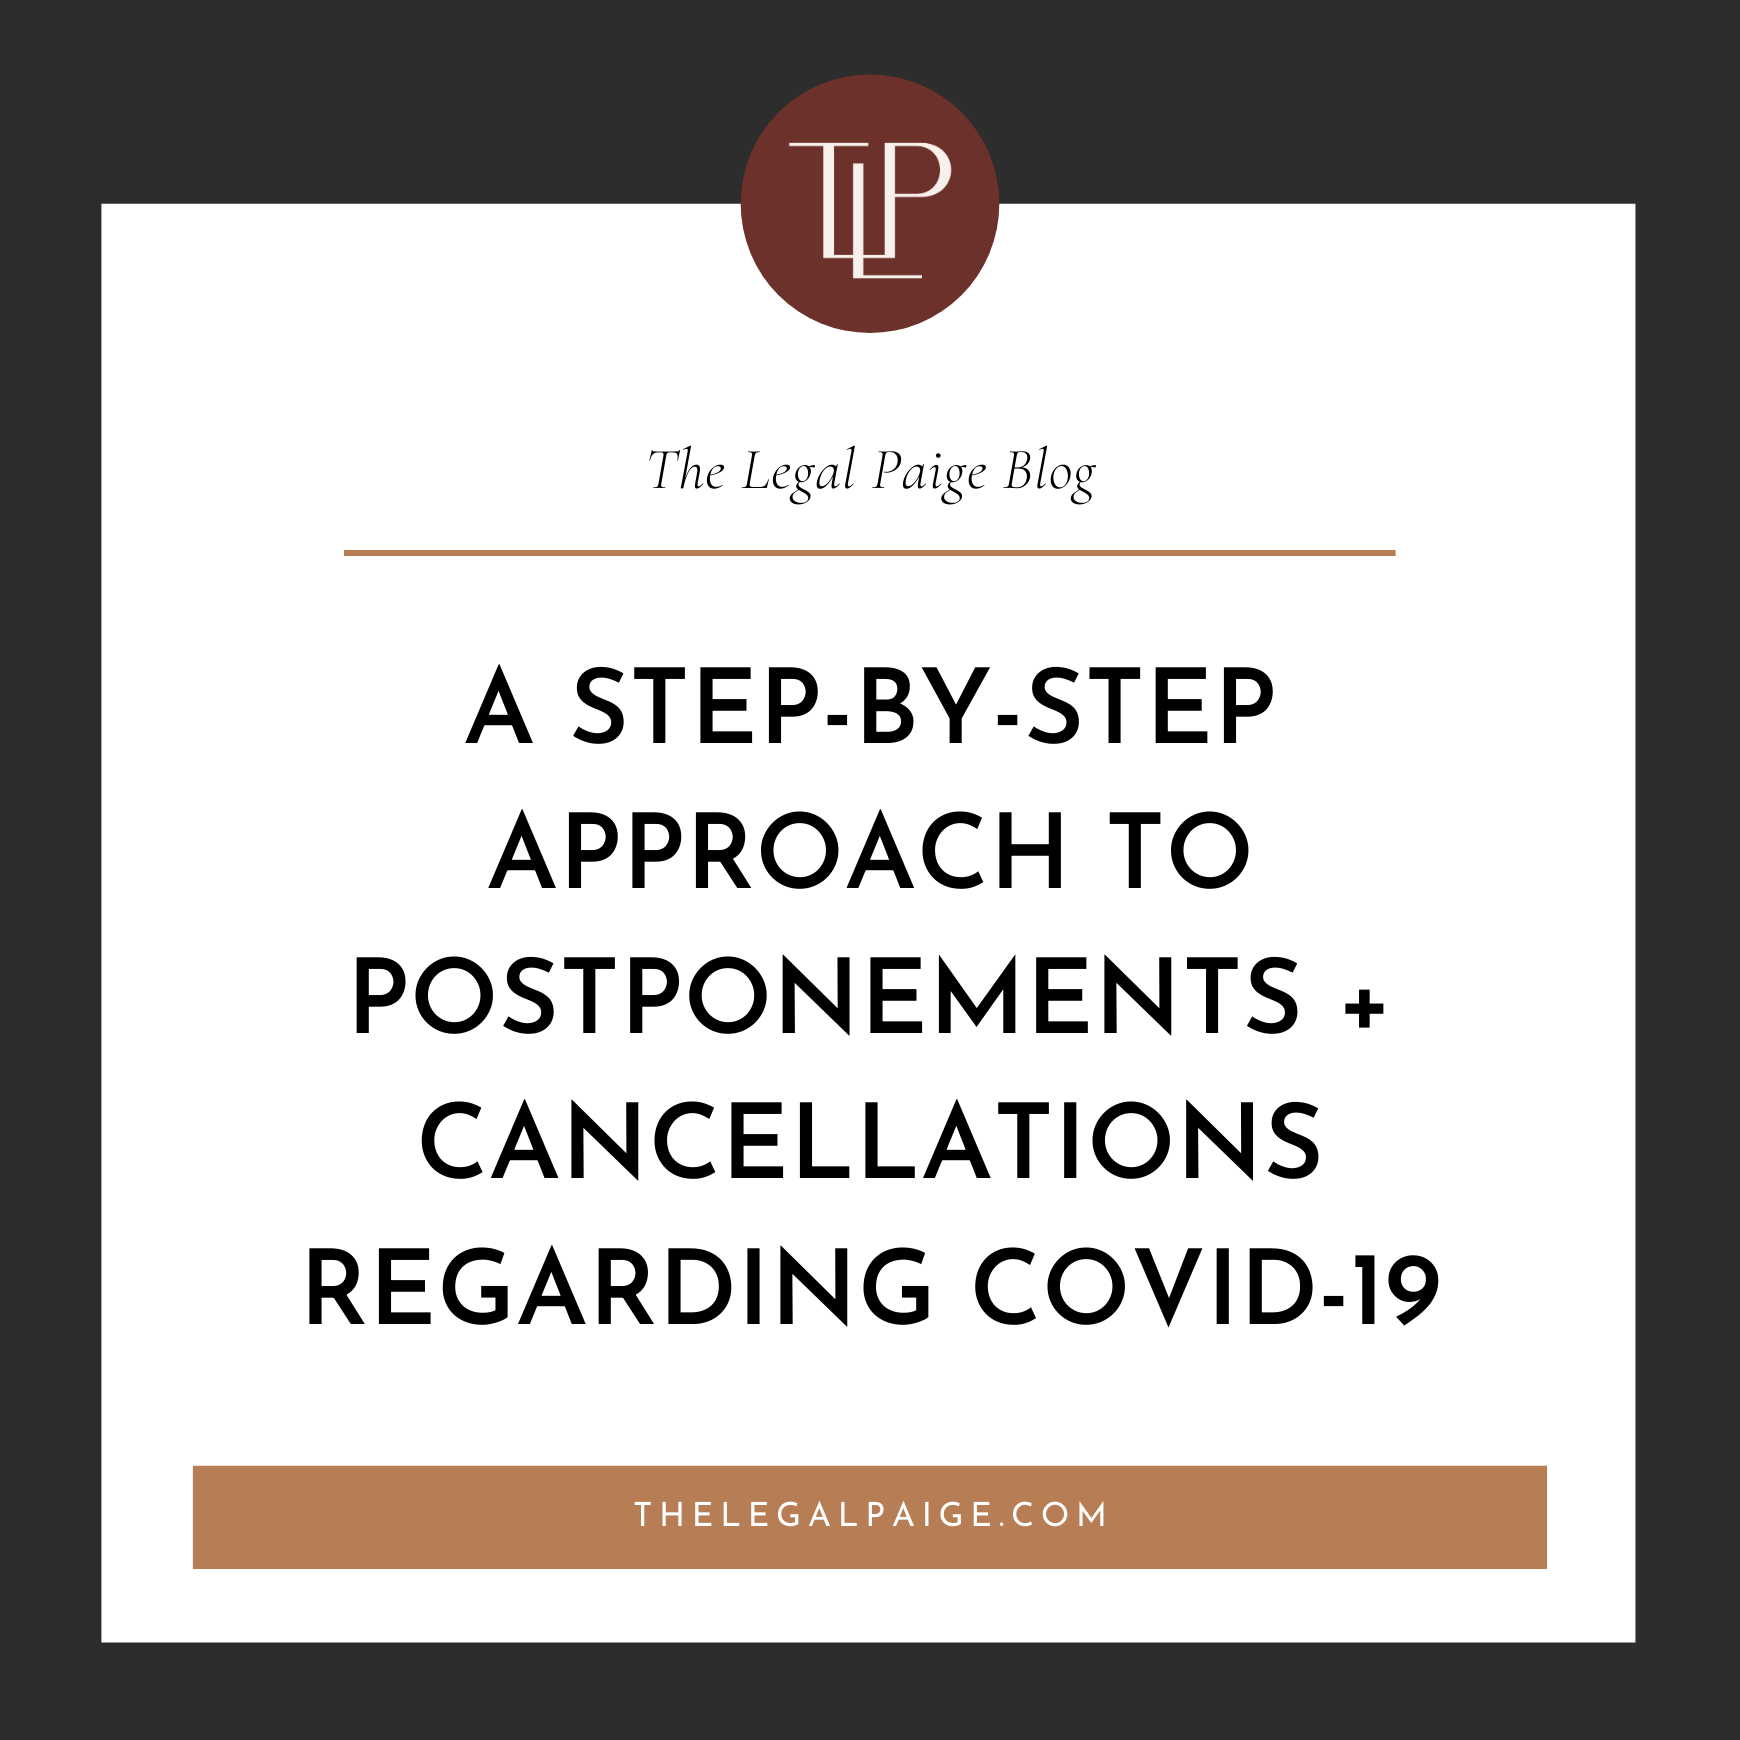 A Step-by-Step Approach to Initiating Postponements and Cancellations Regarding Covid-19